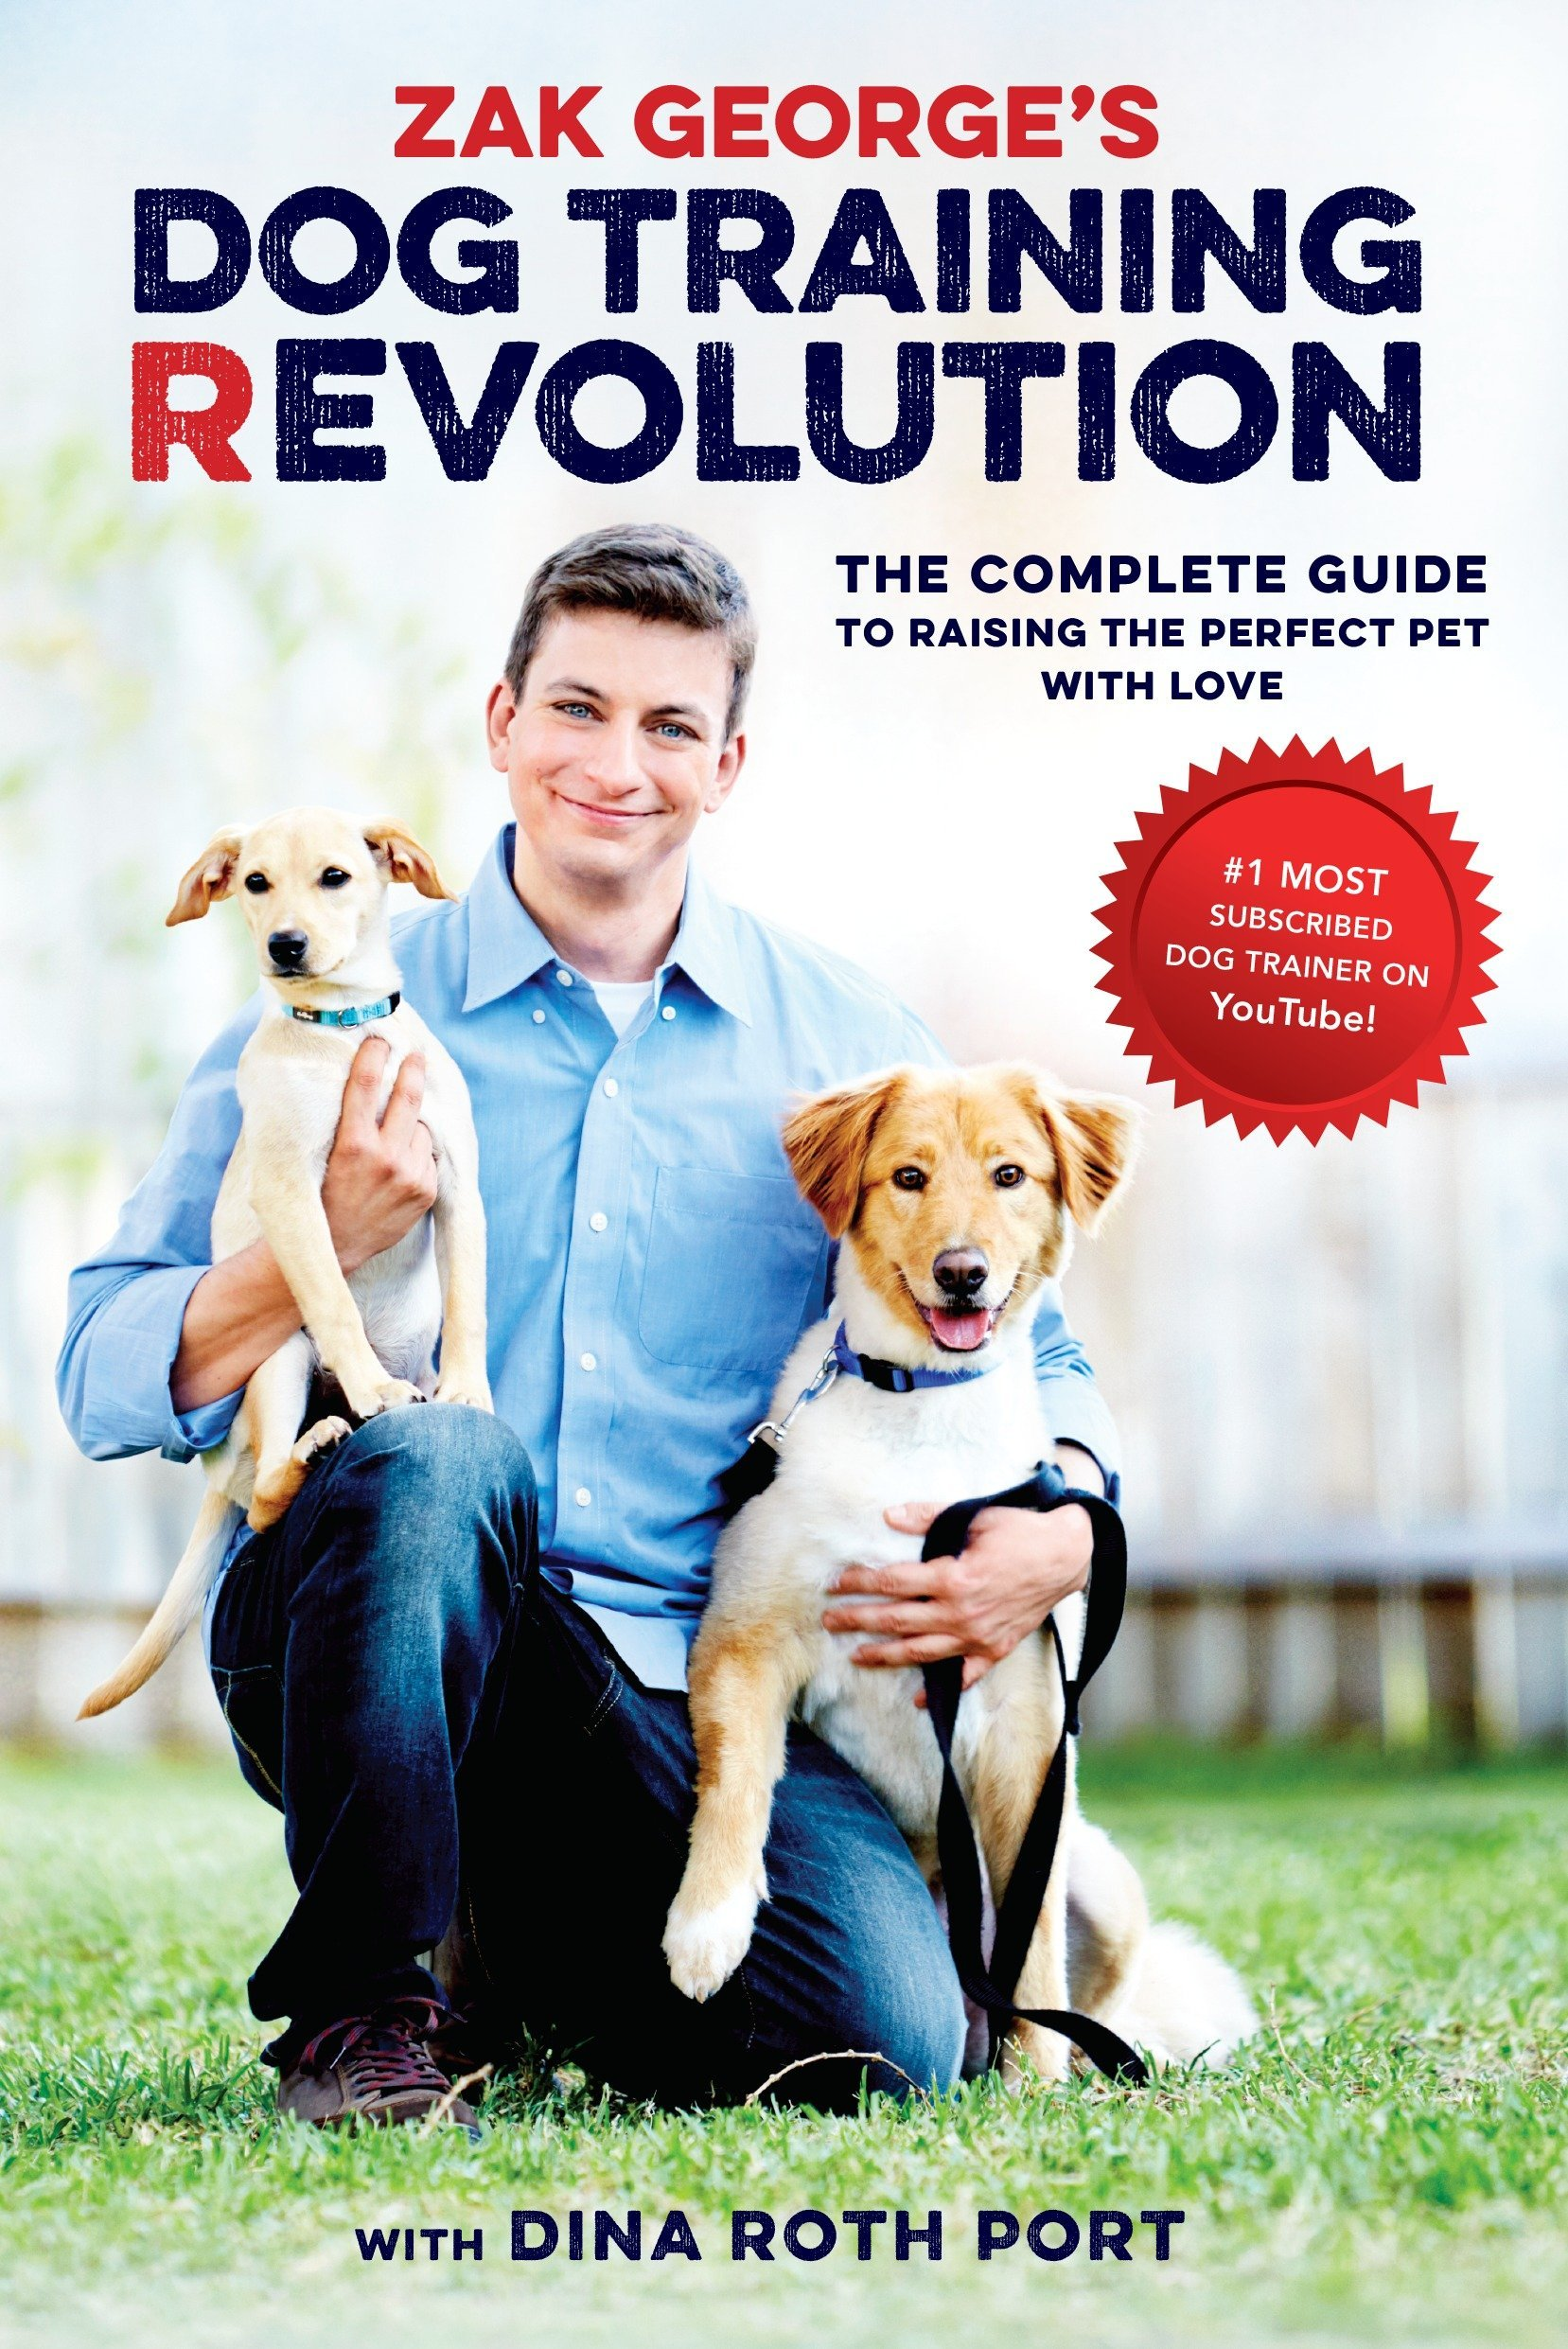 Zak George's Dog Training Revolution: The Complete Guide to Raising the Perfect Pet with Love by Dina Roth Port Zak George